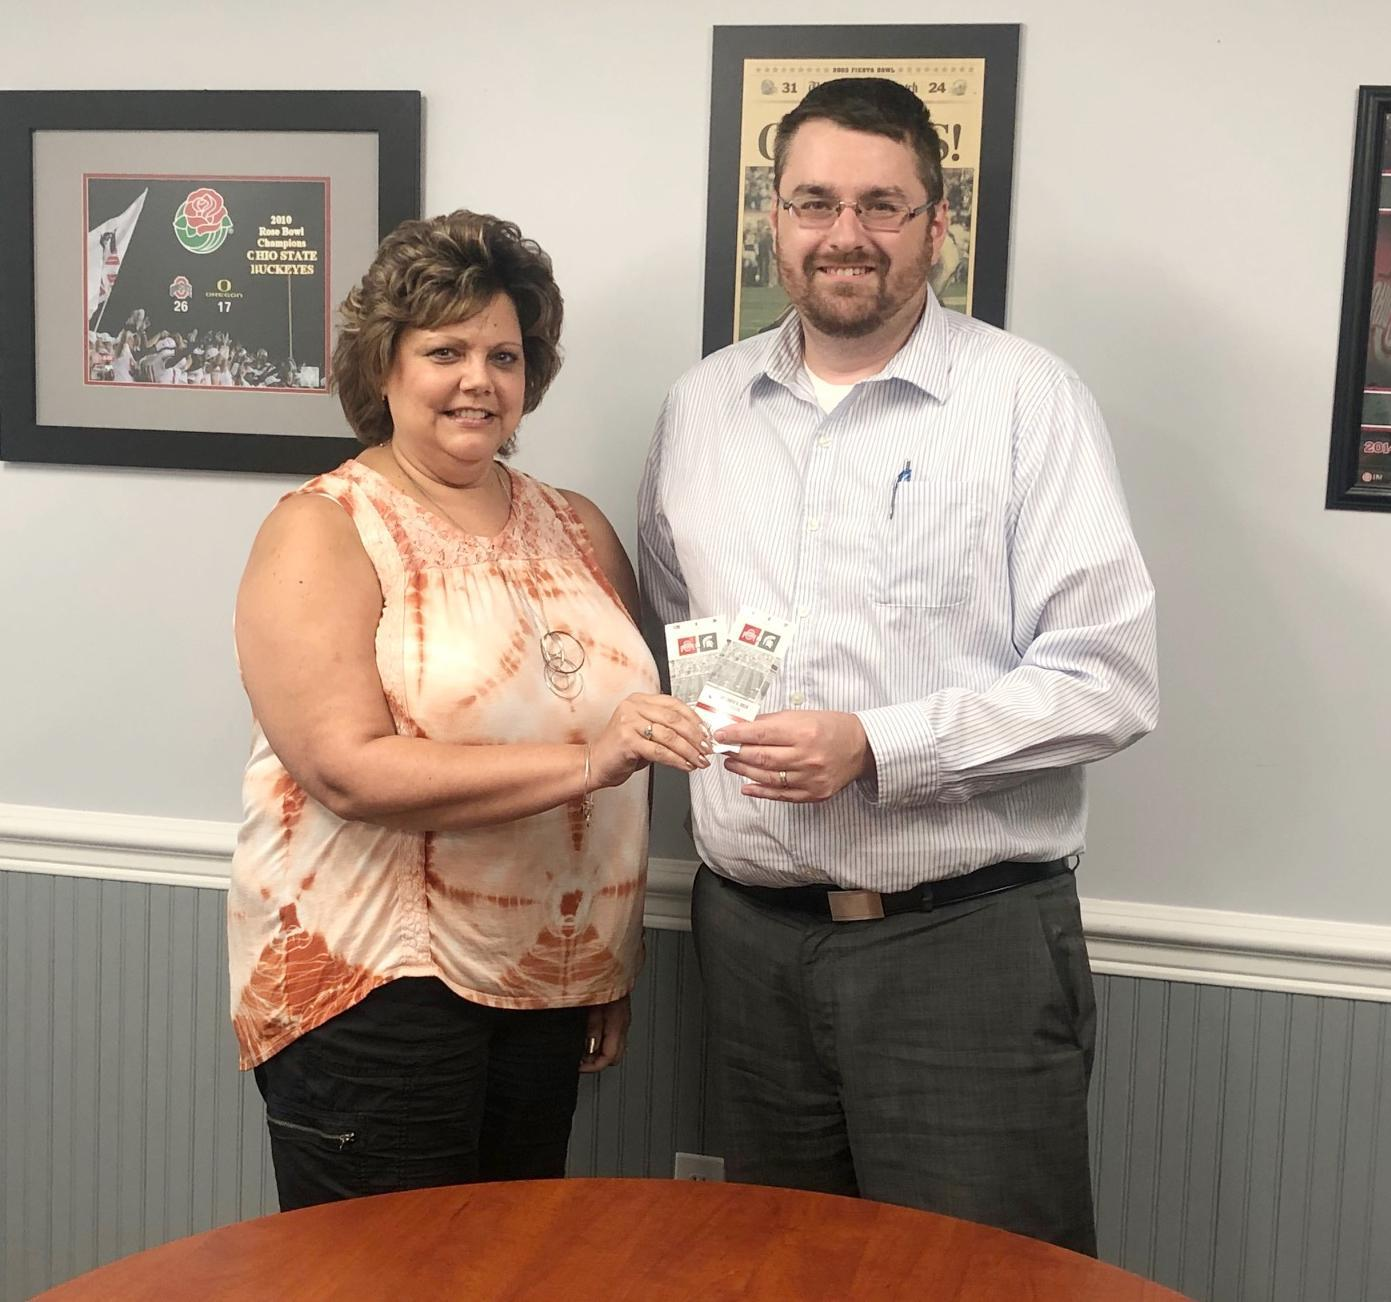 Stephanie Rouse, left, won two tickets for the Ohio State-Michigan State game from Yoss Law Office. Pictured presenting the tickets is Todd Abbott.